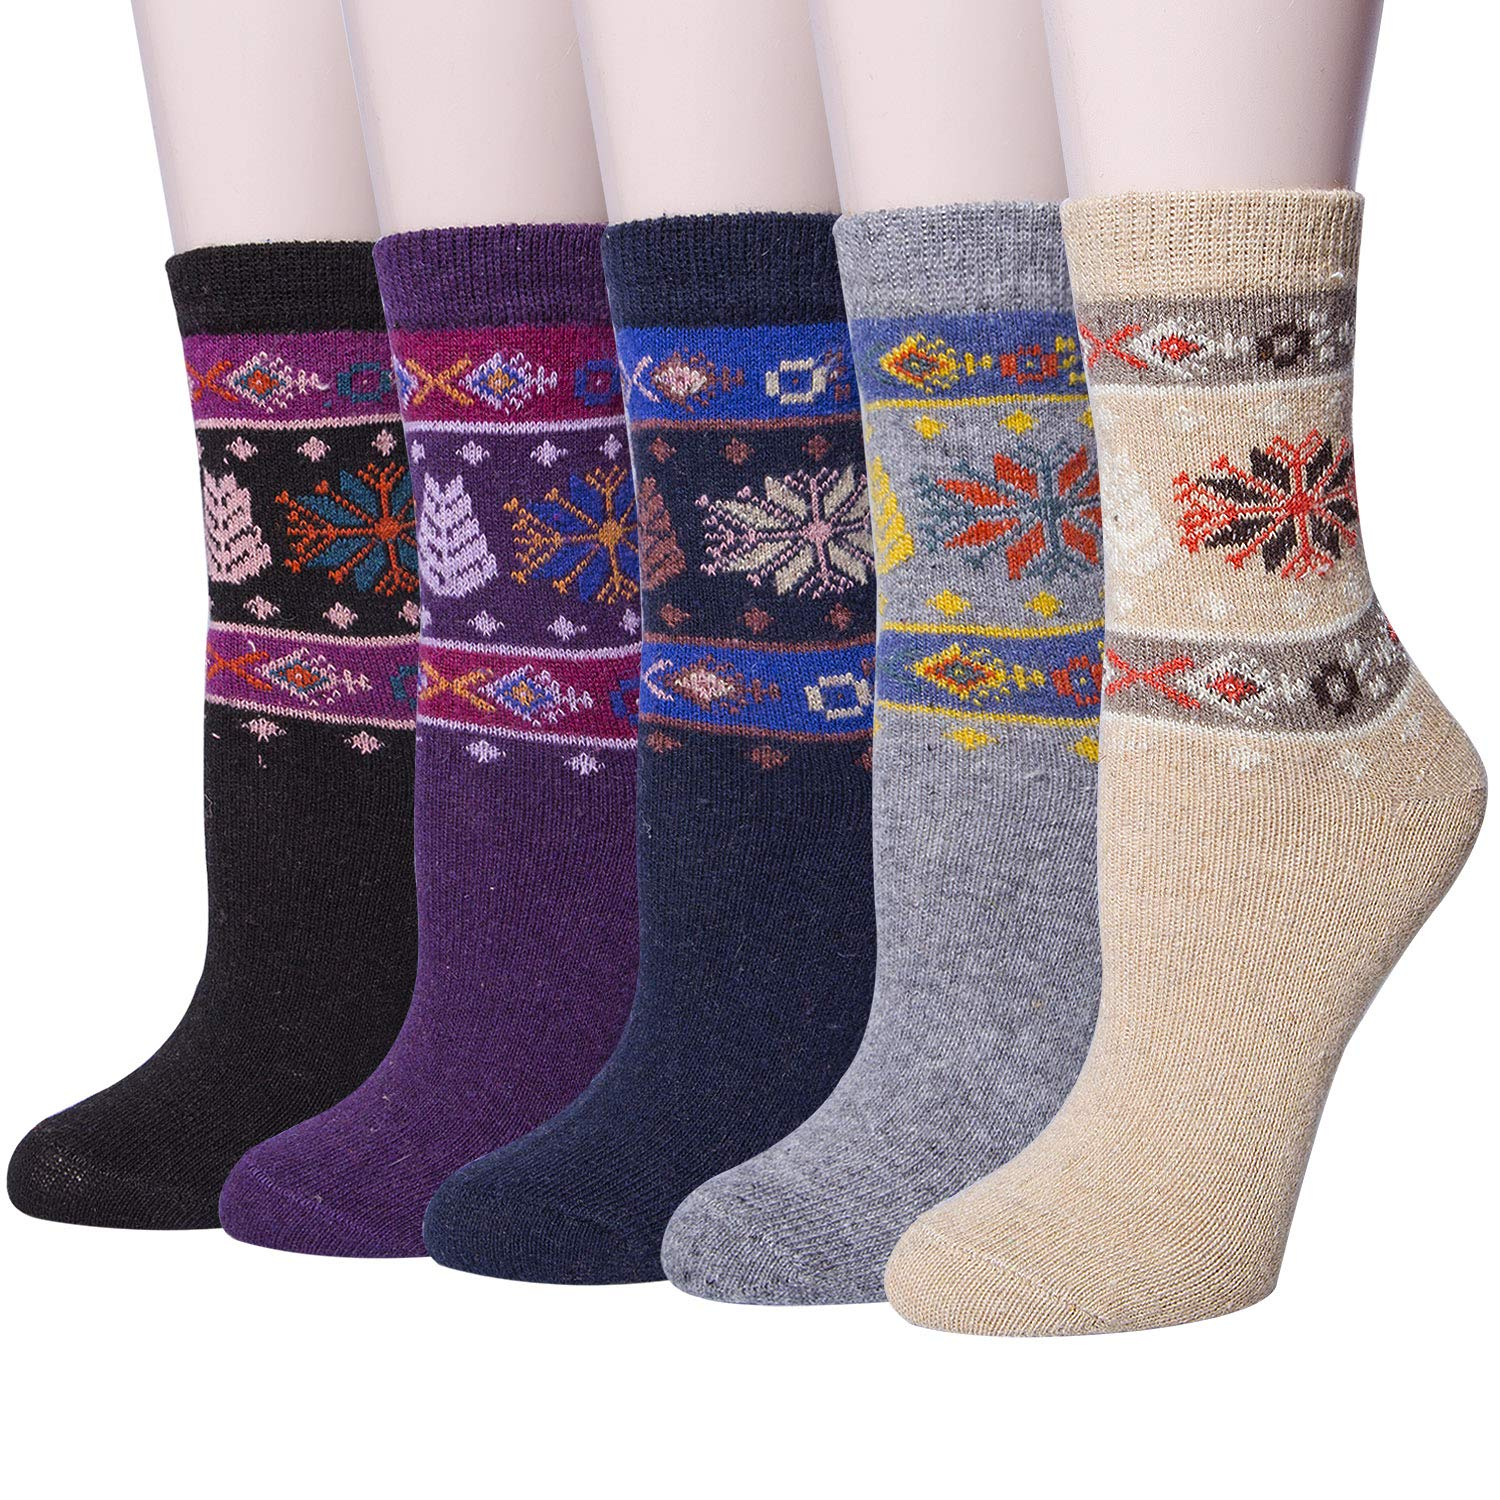 5 Pairs Womens Vintage Style Knit Warm Wool Winter Crew Socks